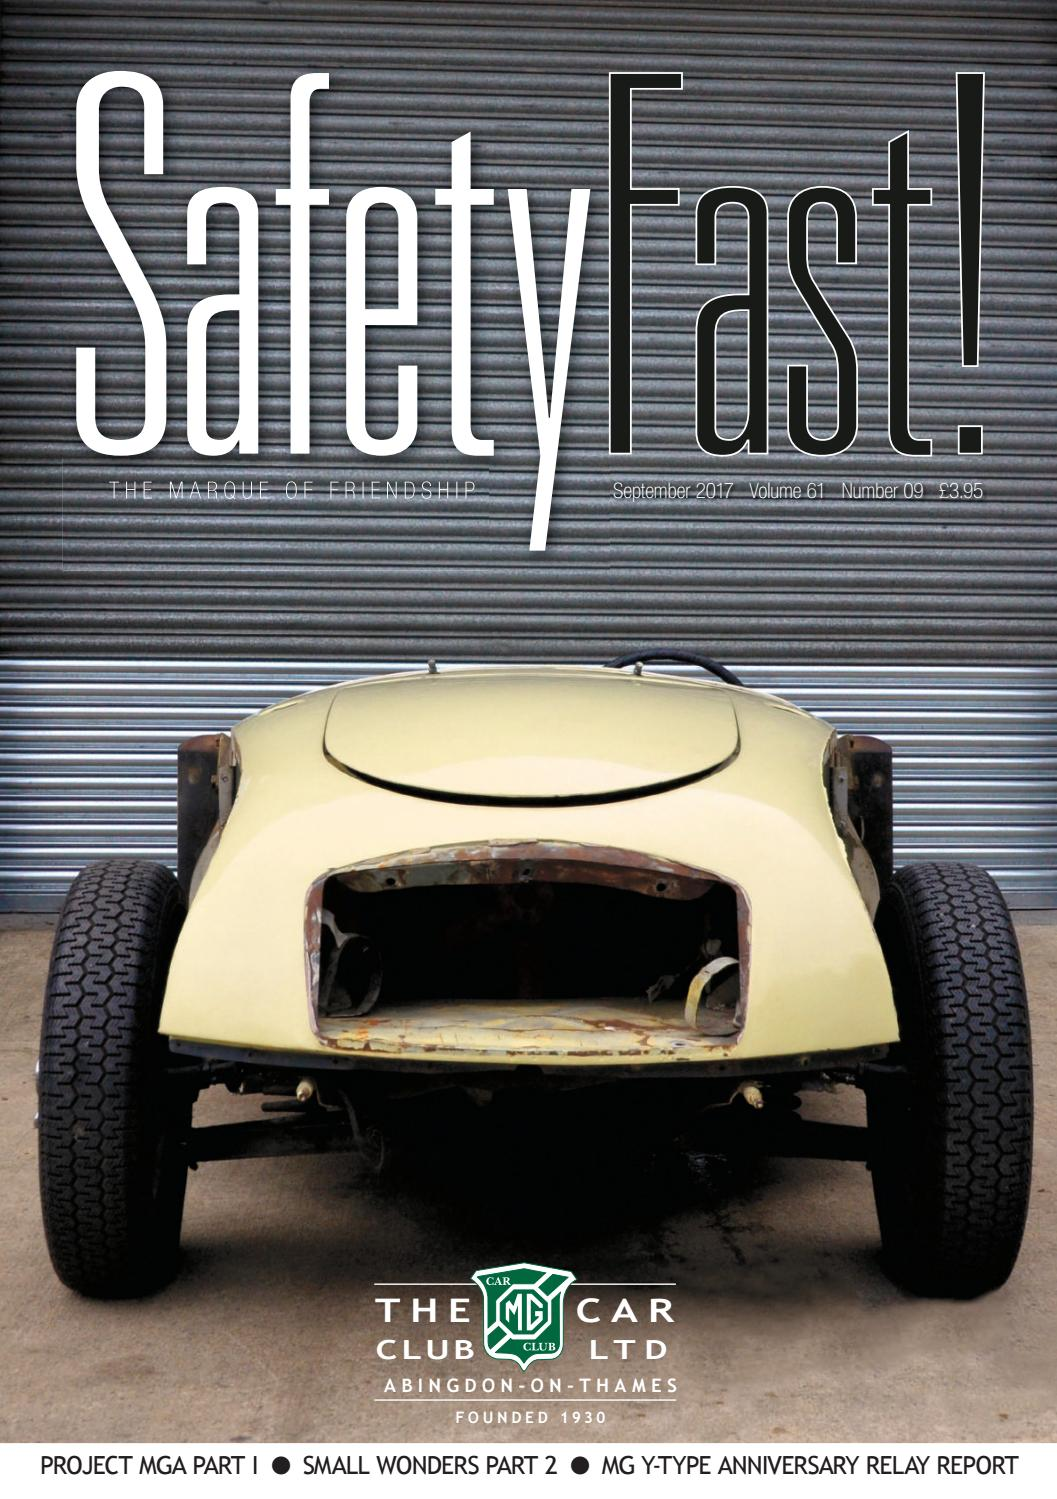 ee73794e82c Safety Fast! September 2017 by MG Car Club - issuu